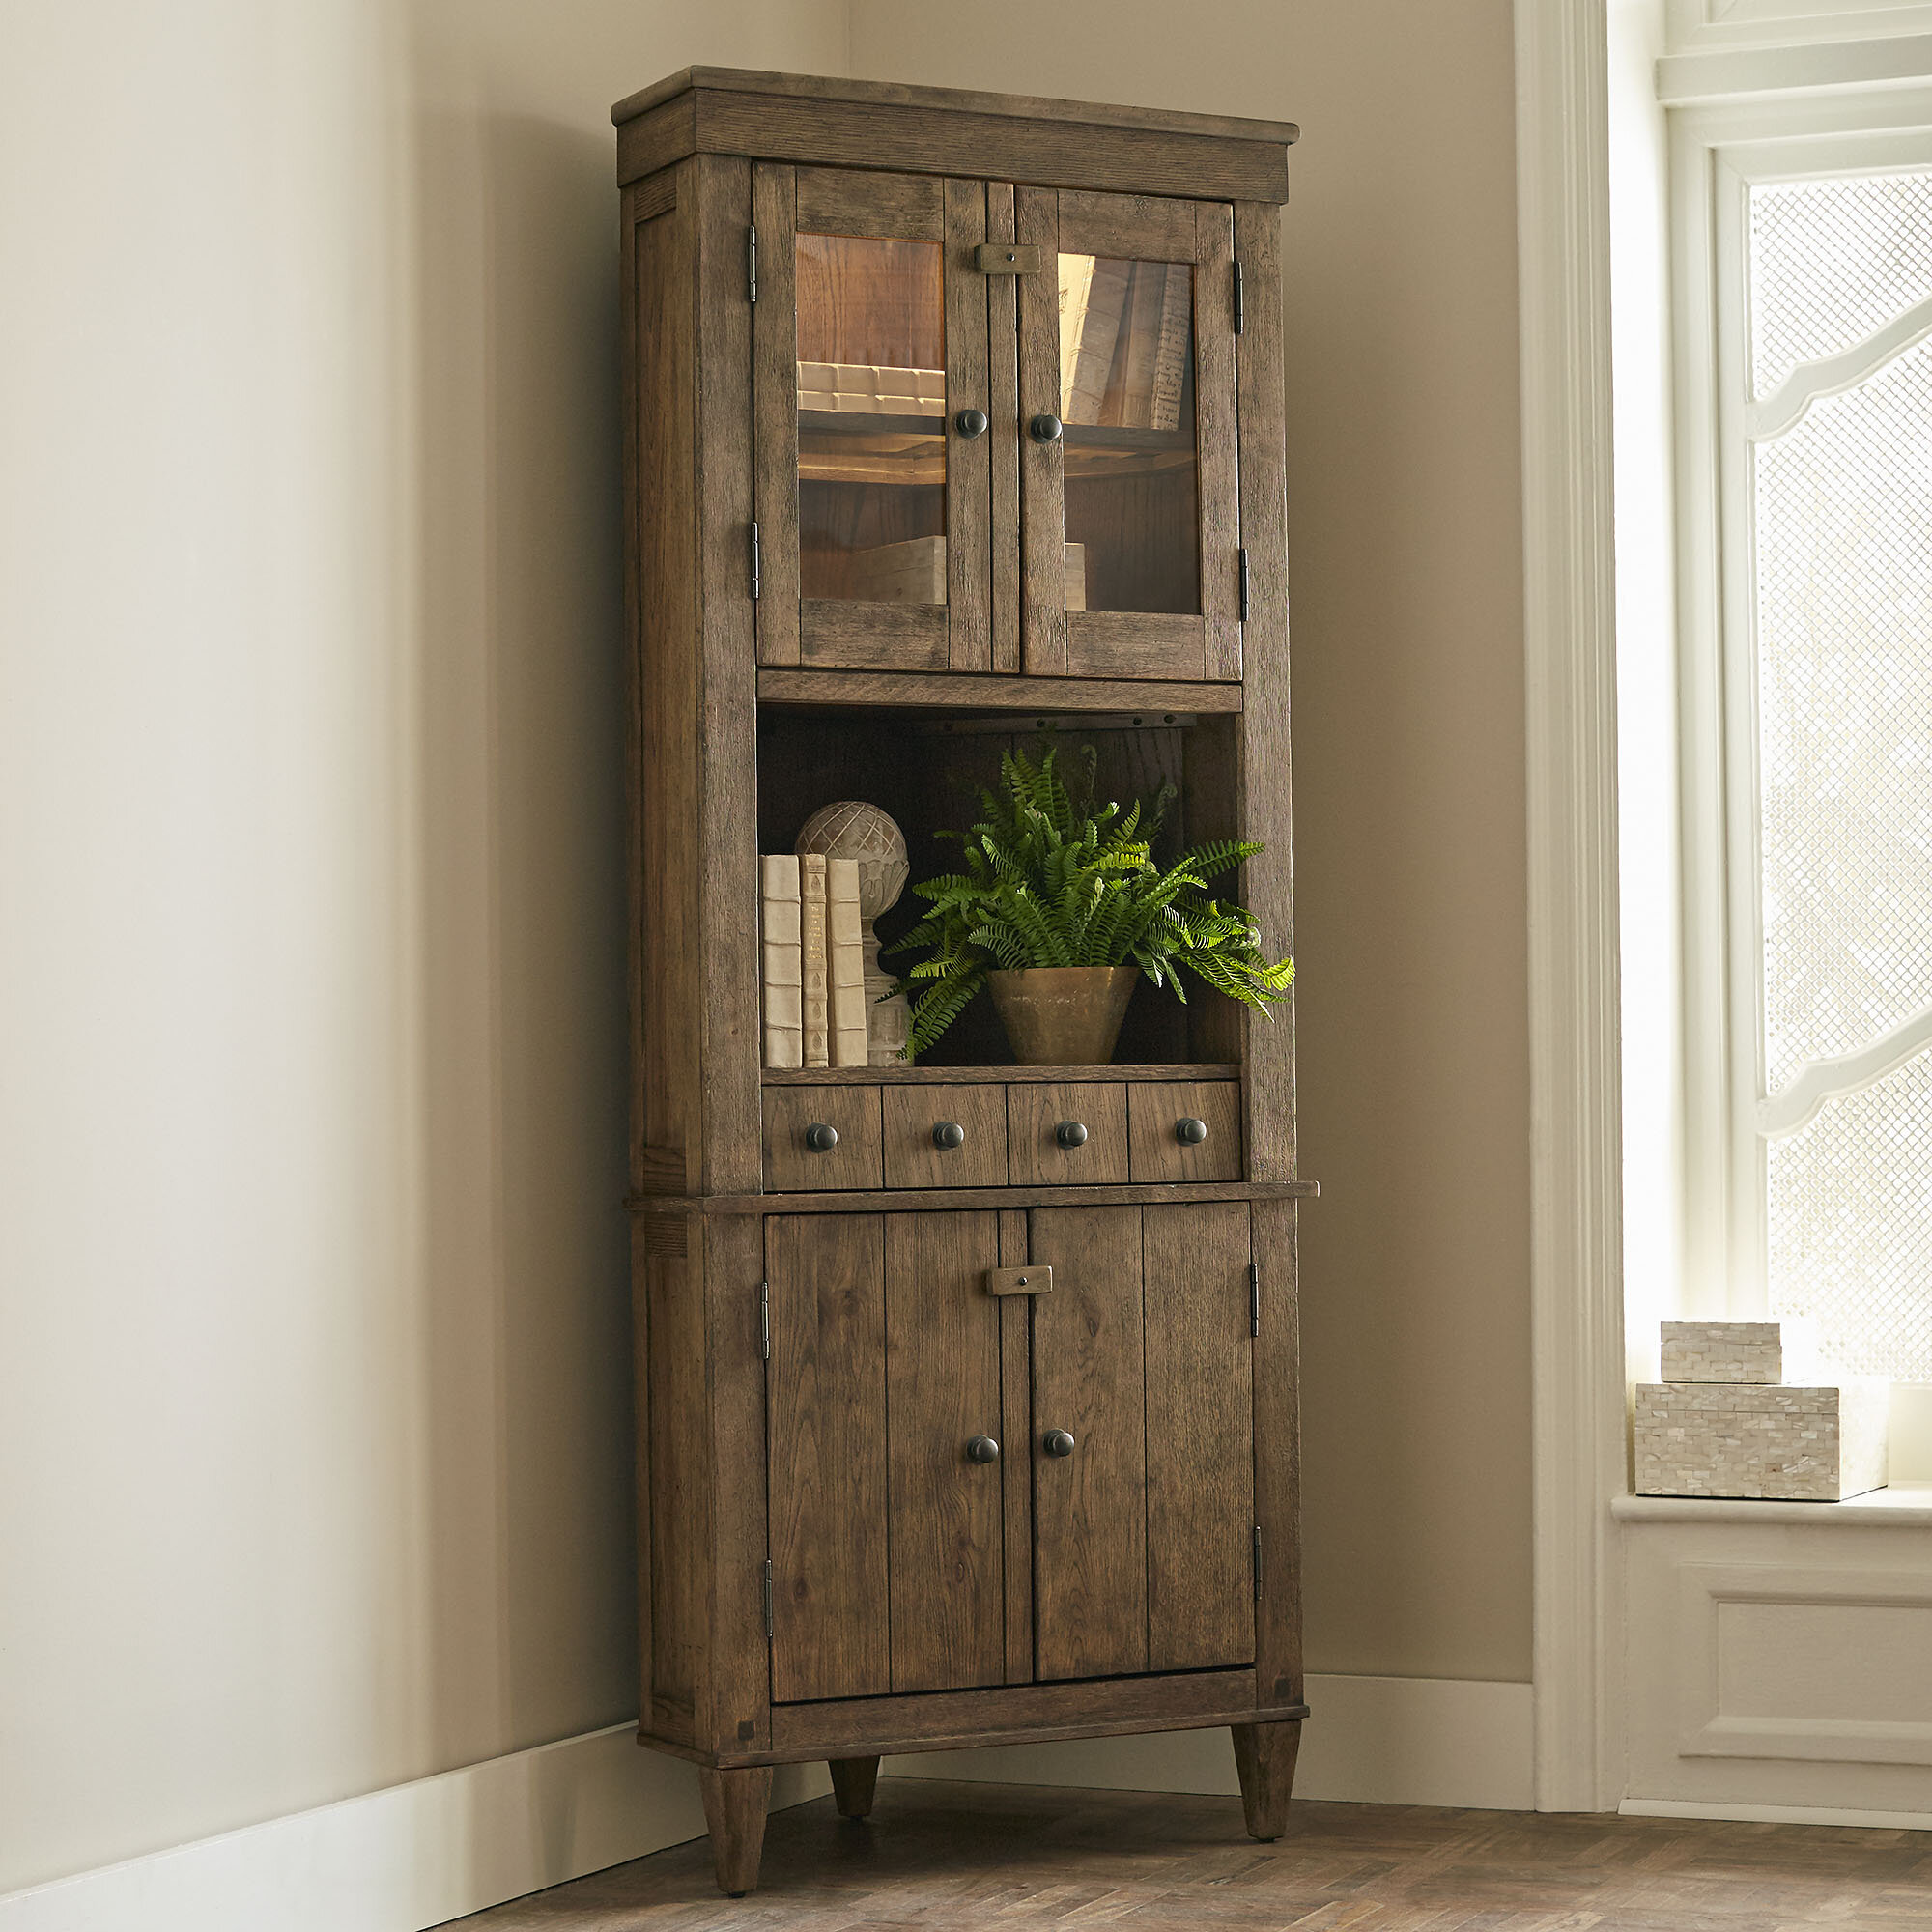 Birch Lane™ Derrickson Corner Cabinet & Reviews | Birch Lane on corner bathroom vanities for small bathrooms, corner bathroom cabinets online, corner bathroom shelving ideas, jack and jill bathroom design ideas, master bathroom remodeling ideas, bathroom cabinets design ideas, corner door ideas, corner bathroom cabinets and mirrors, corner coat rack ideas, corner bathroom counter organizer, corner medicine cabinet, corner bathroom countertop ideas, corner storage cabinet, corner lazy susan ideas, corner linen cabinet, corner cabinets for bathroom, corner bathroom vanity, corner dresser ideas, corner cabinet furniture, corner bathroom storage,